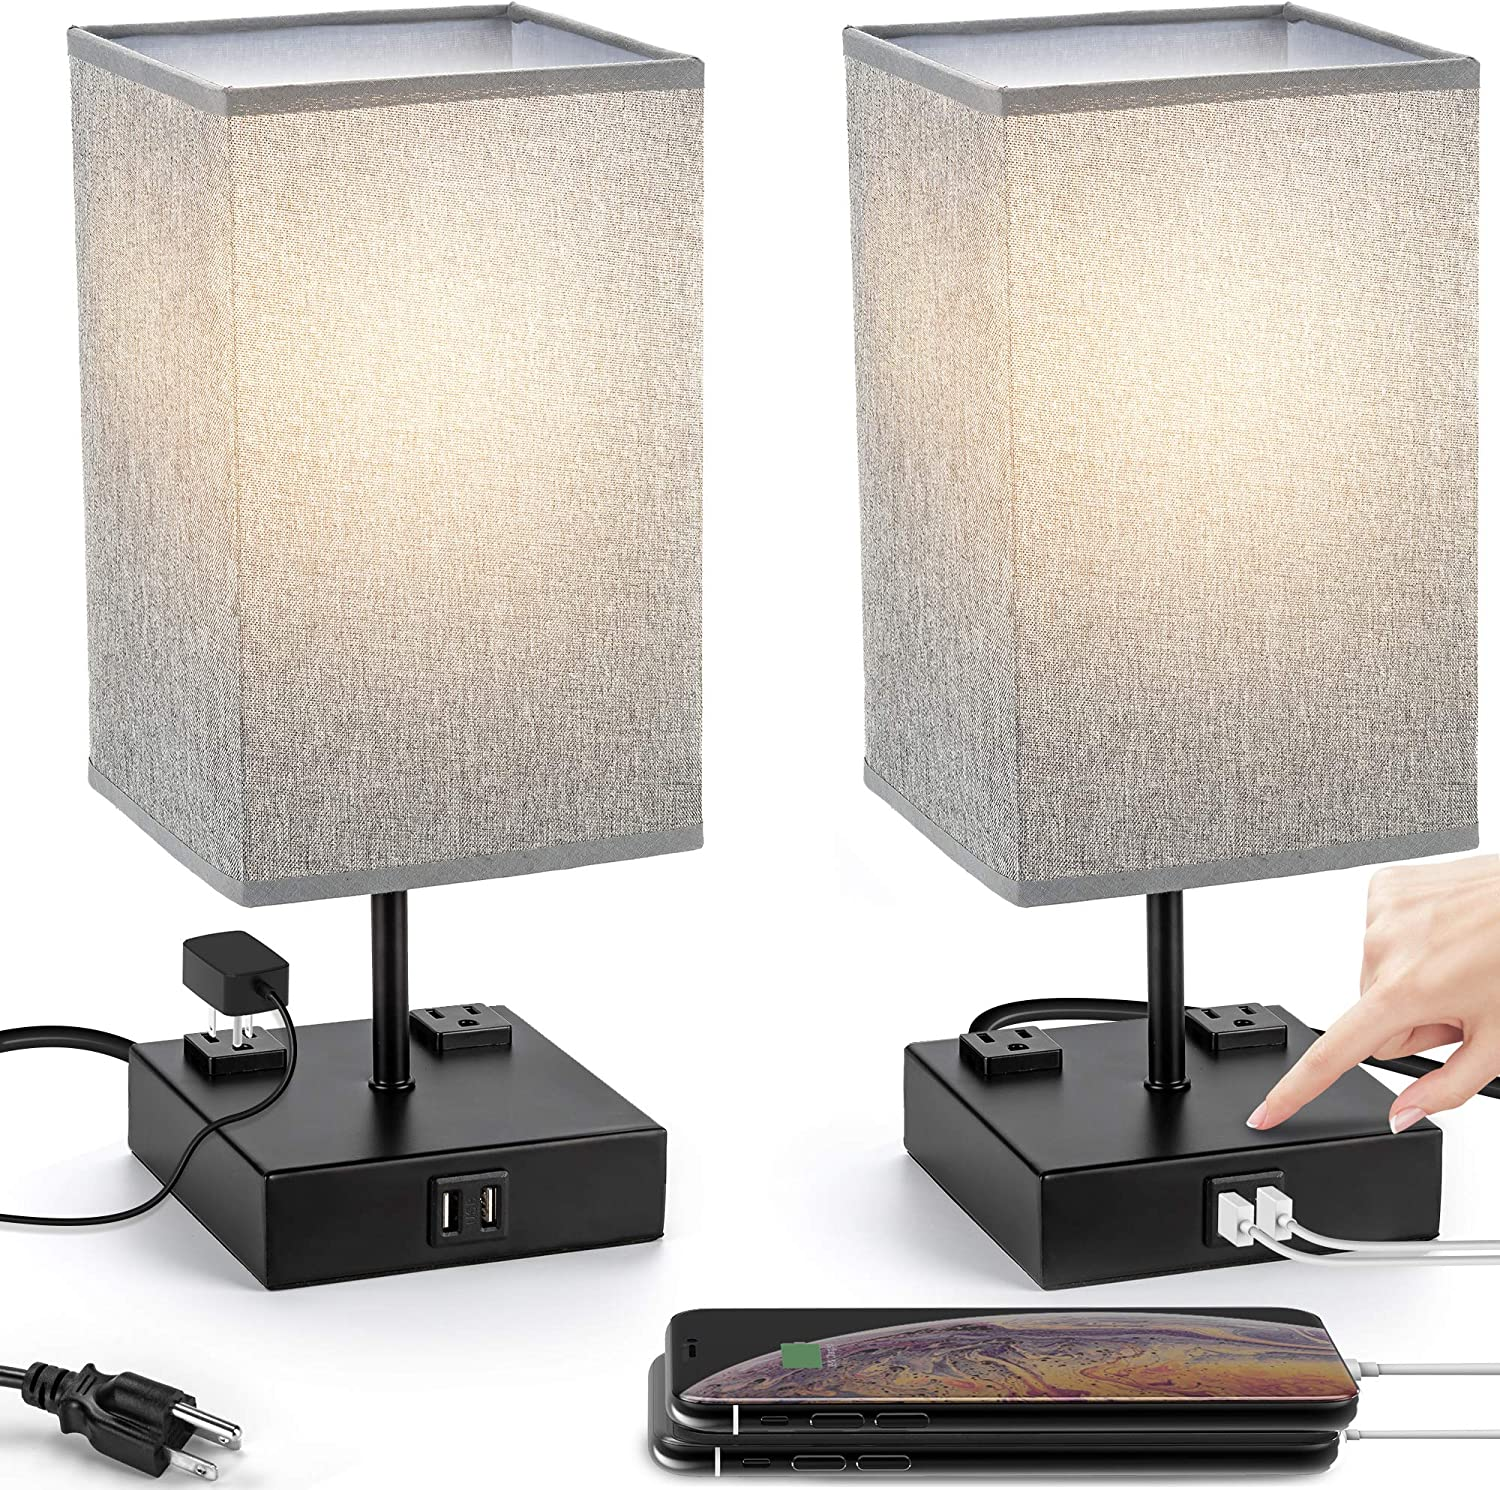 UL Approval Touch Control Table Lamp with USB and AC Outlet, SUPERDANNY 3-Way Dimmable Bedside Nightstand Lamp Modern Light, Desk Reading Lamp for Bedroom, Living Room, Gray, Set of 2…: Home Improvement